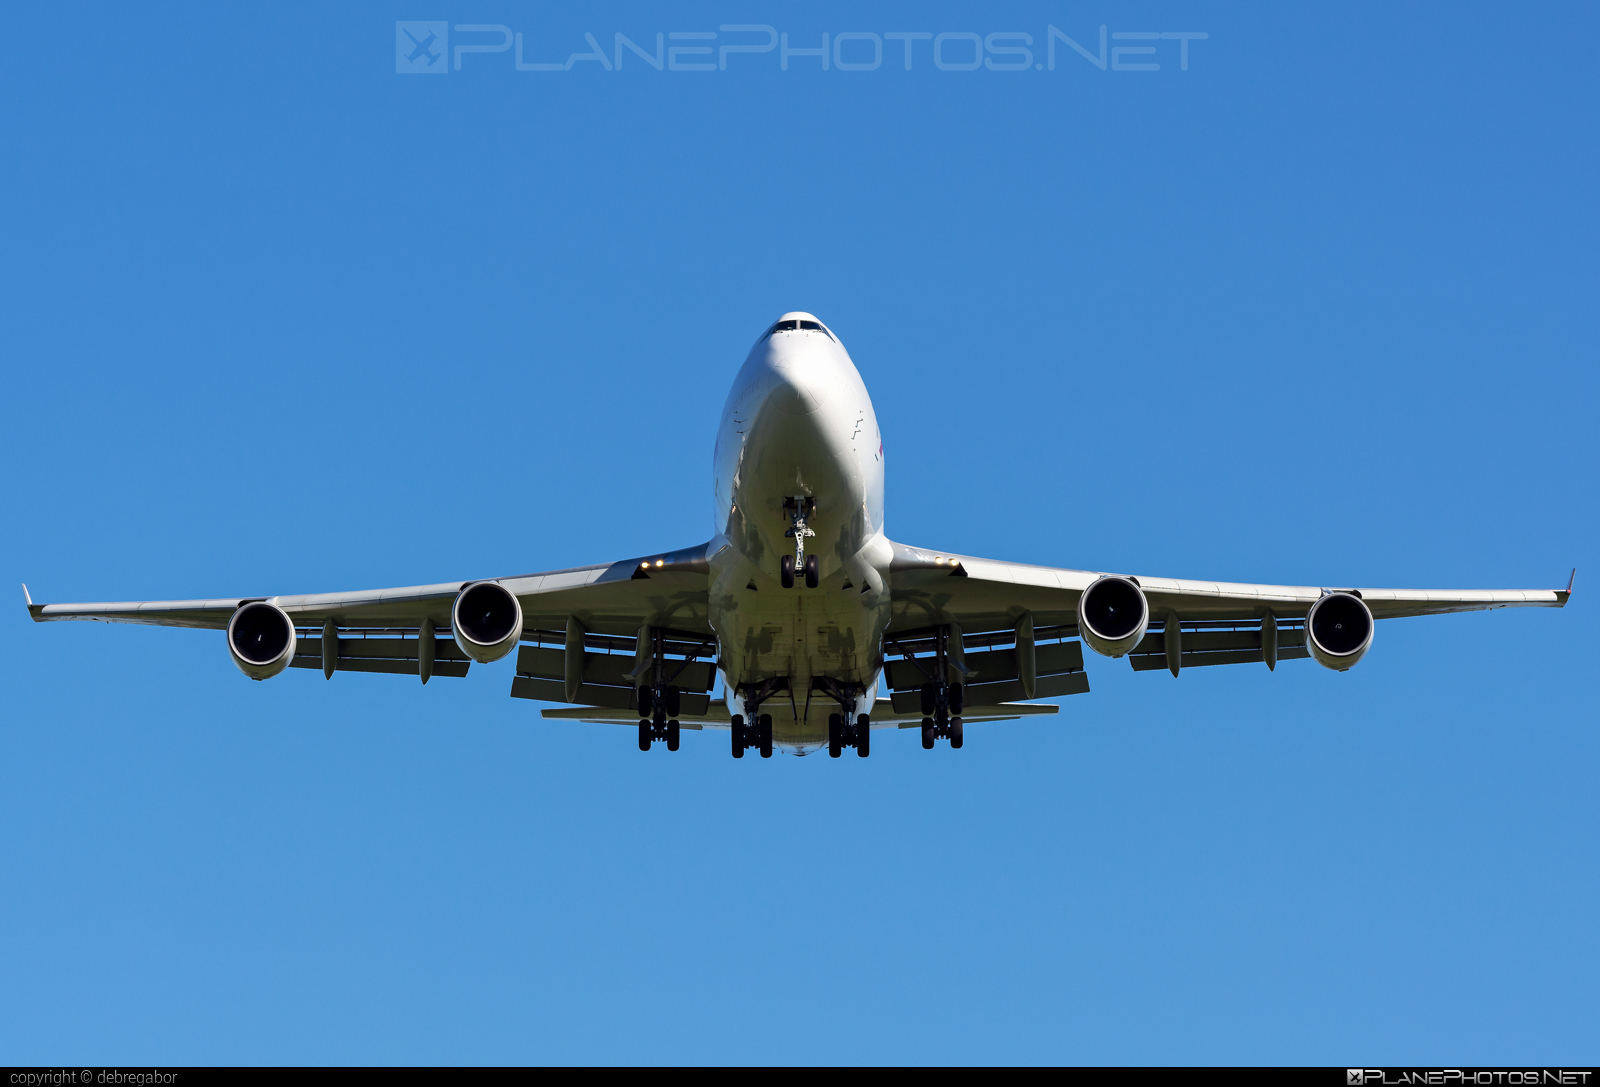 Boeing 747-400SF - TF-AMM operated by Astral Aviation #astralaviation #b747 #b747sf #boeing #boeing747 #jumbo